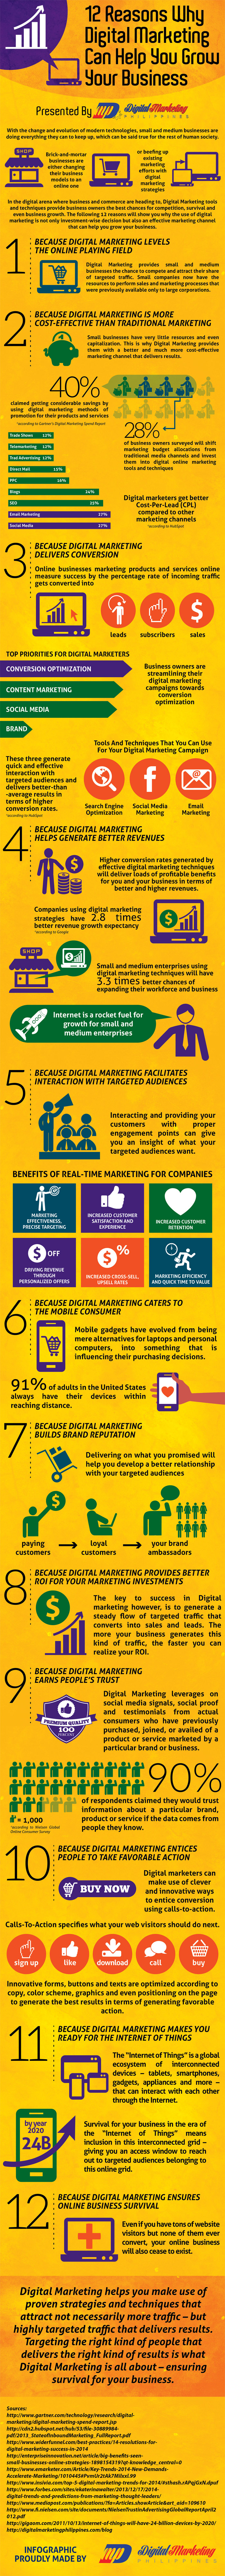 12 Reasons Why Digital Marketing Can Help You Grow Your Business (Infographic) - An Infographic from Digital Marketing Philippines